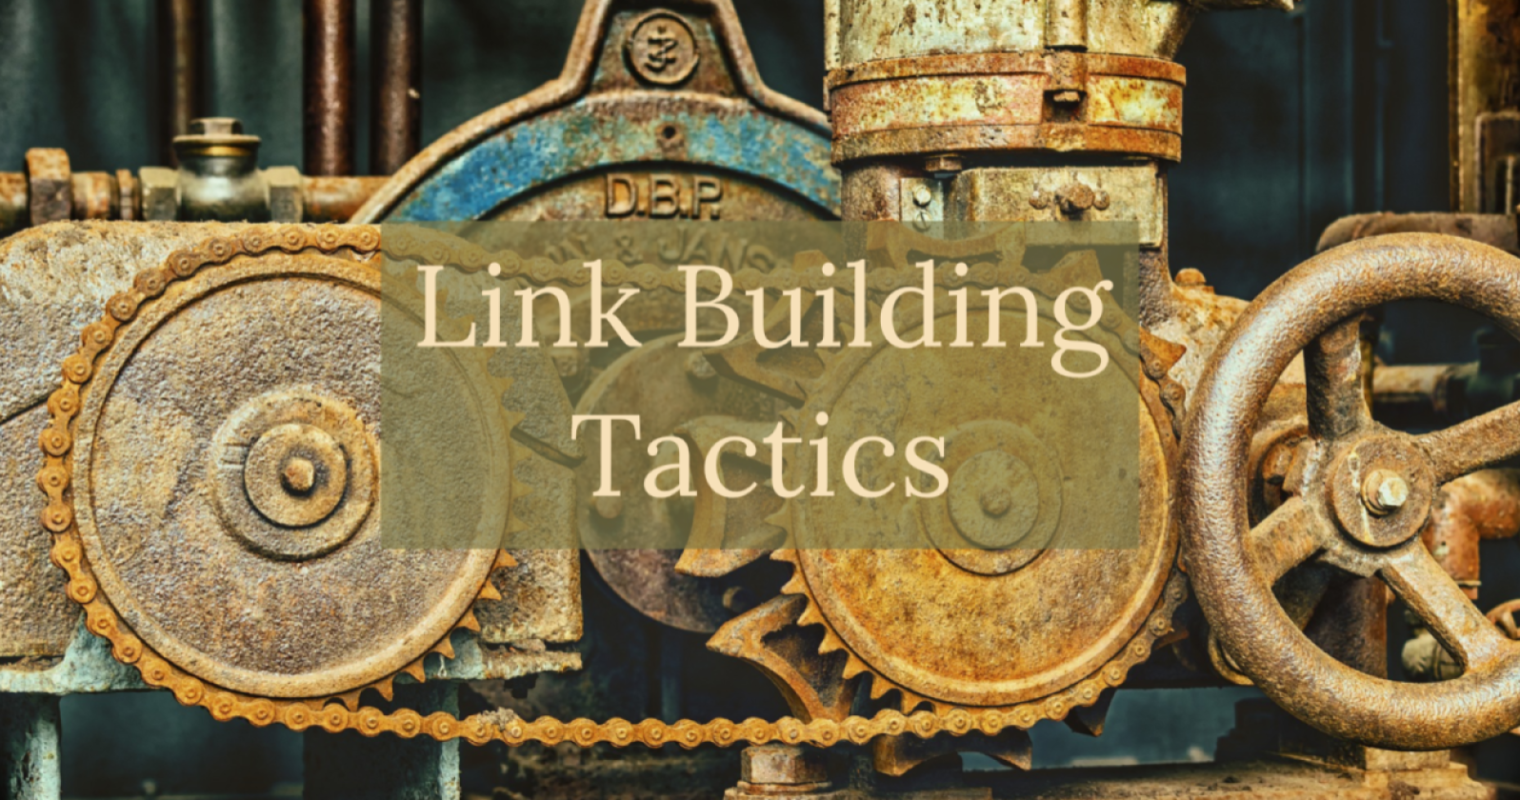 4 Link Building Ideas That Won't Get You Into Hot Water